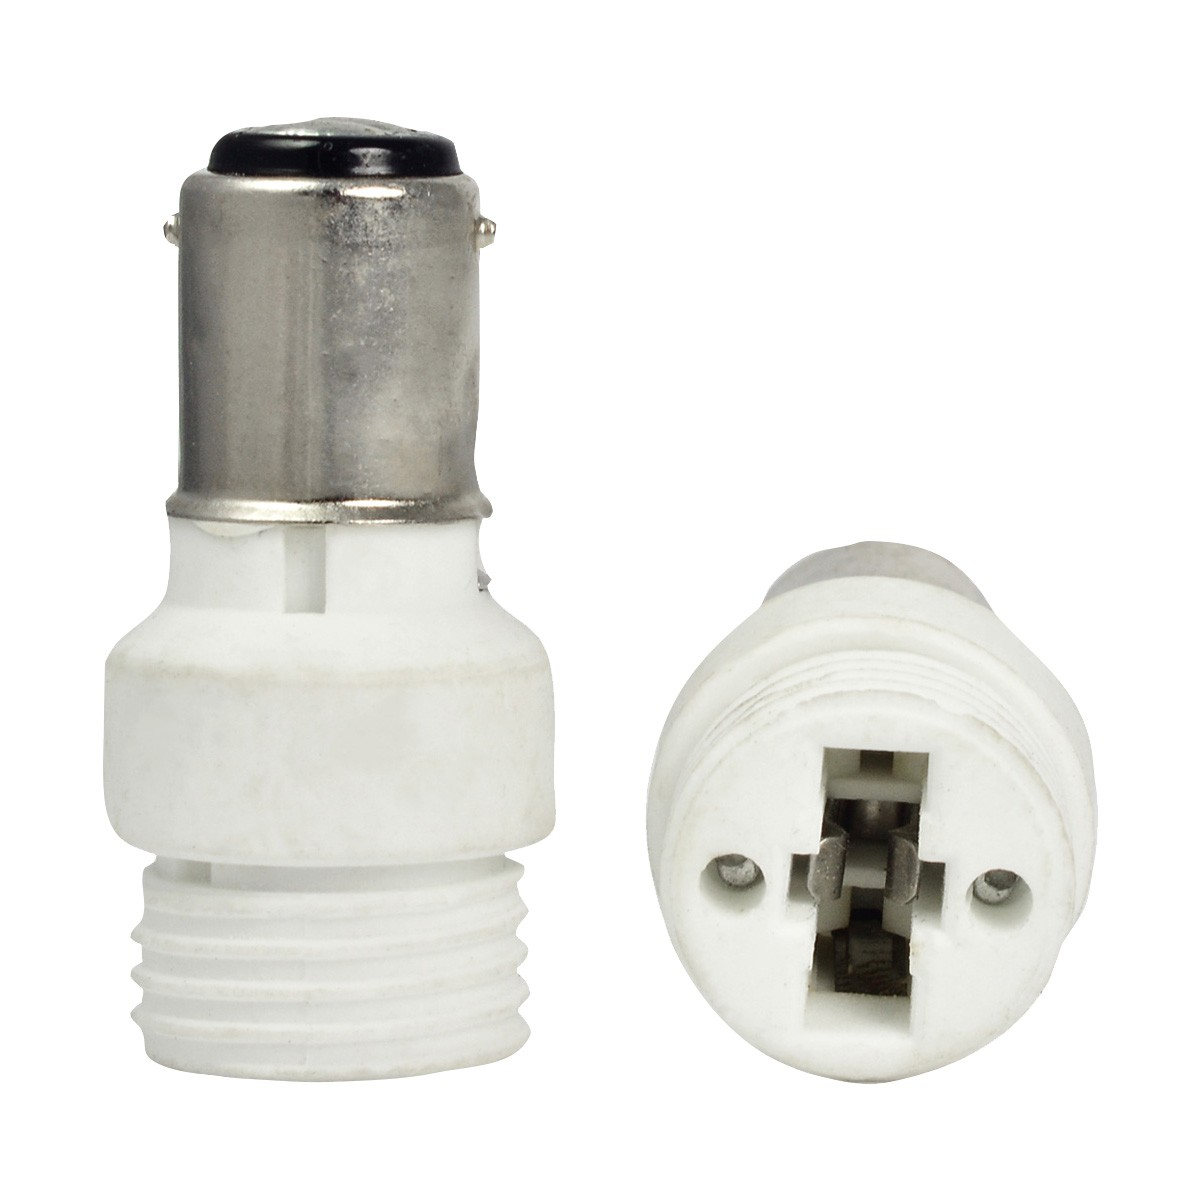 Mengsled mengs high quality lamp base adapter ba15d to g9 led light bulb socket converter Light bulb socket